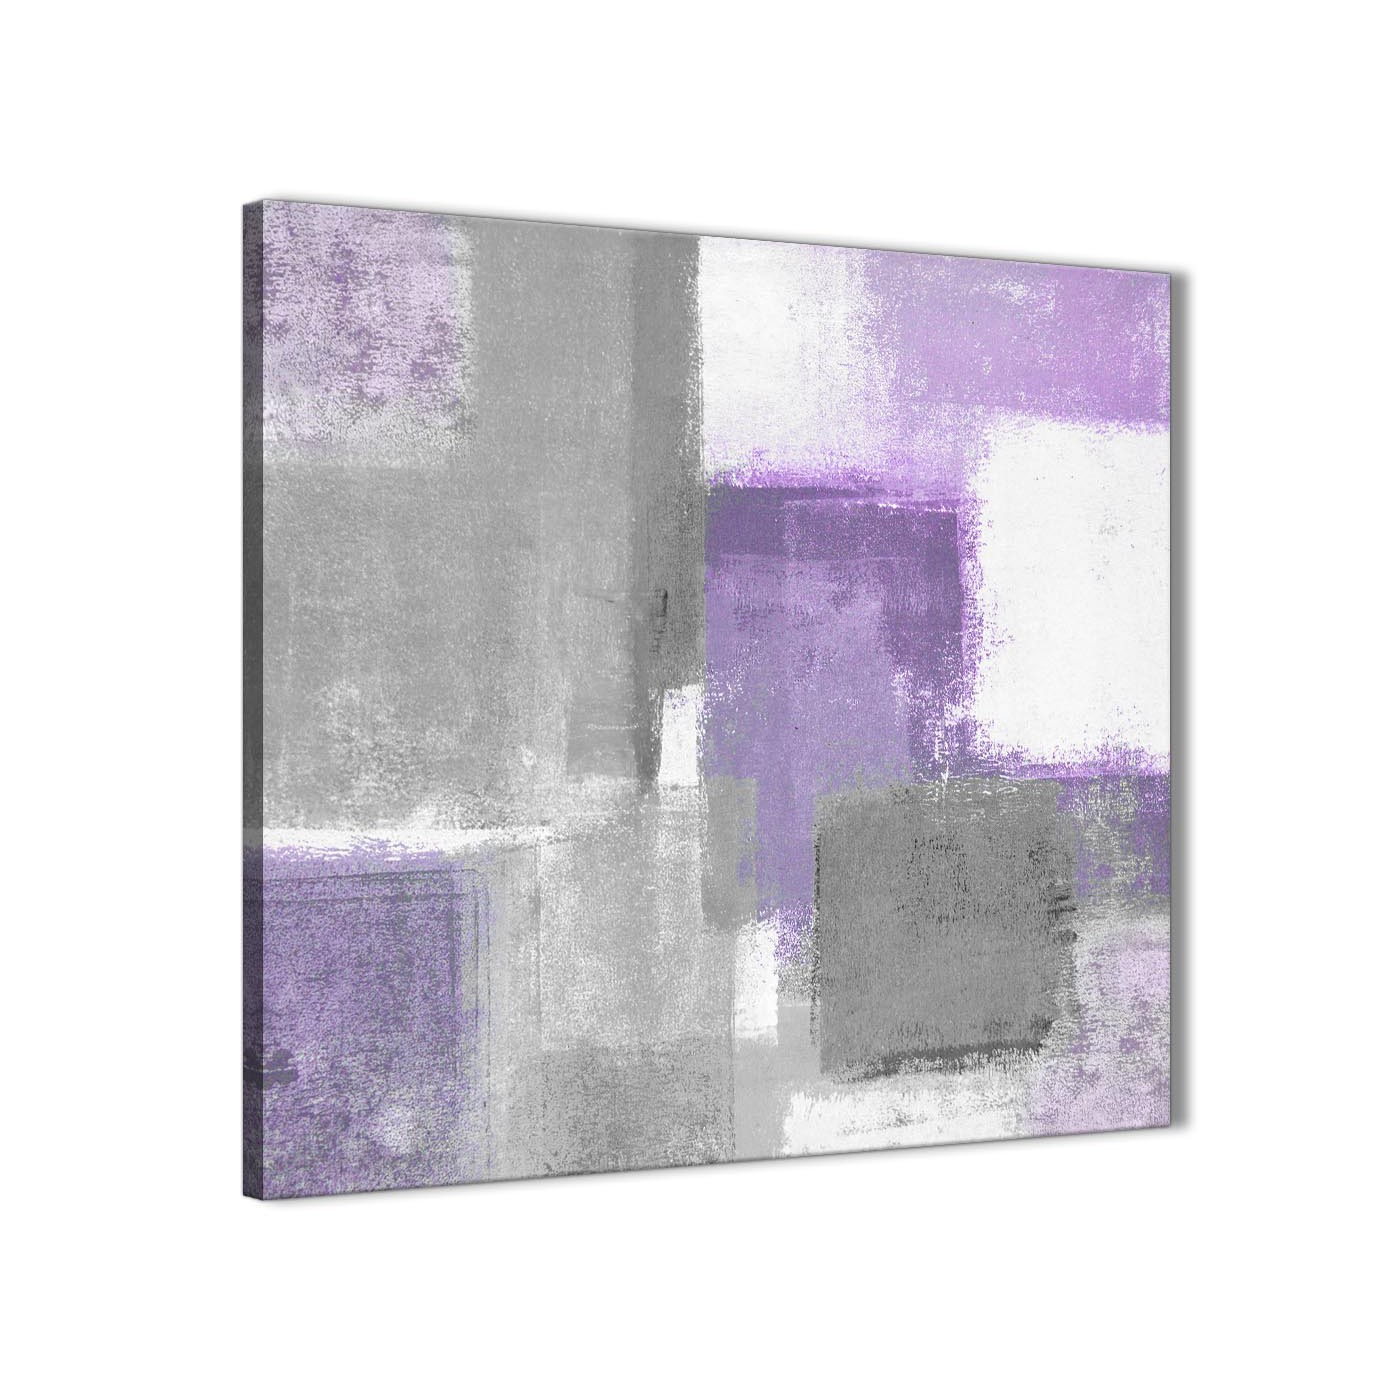 8cbc44919c Cheap Purple Grey Painting Bathroom Canvas Wall Art Accessories - Abstract  1s376s - 49cm Square Print Display Gallery Item 1 ...